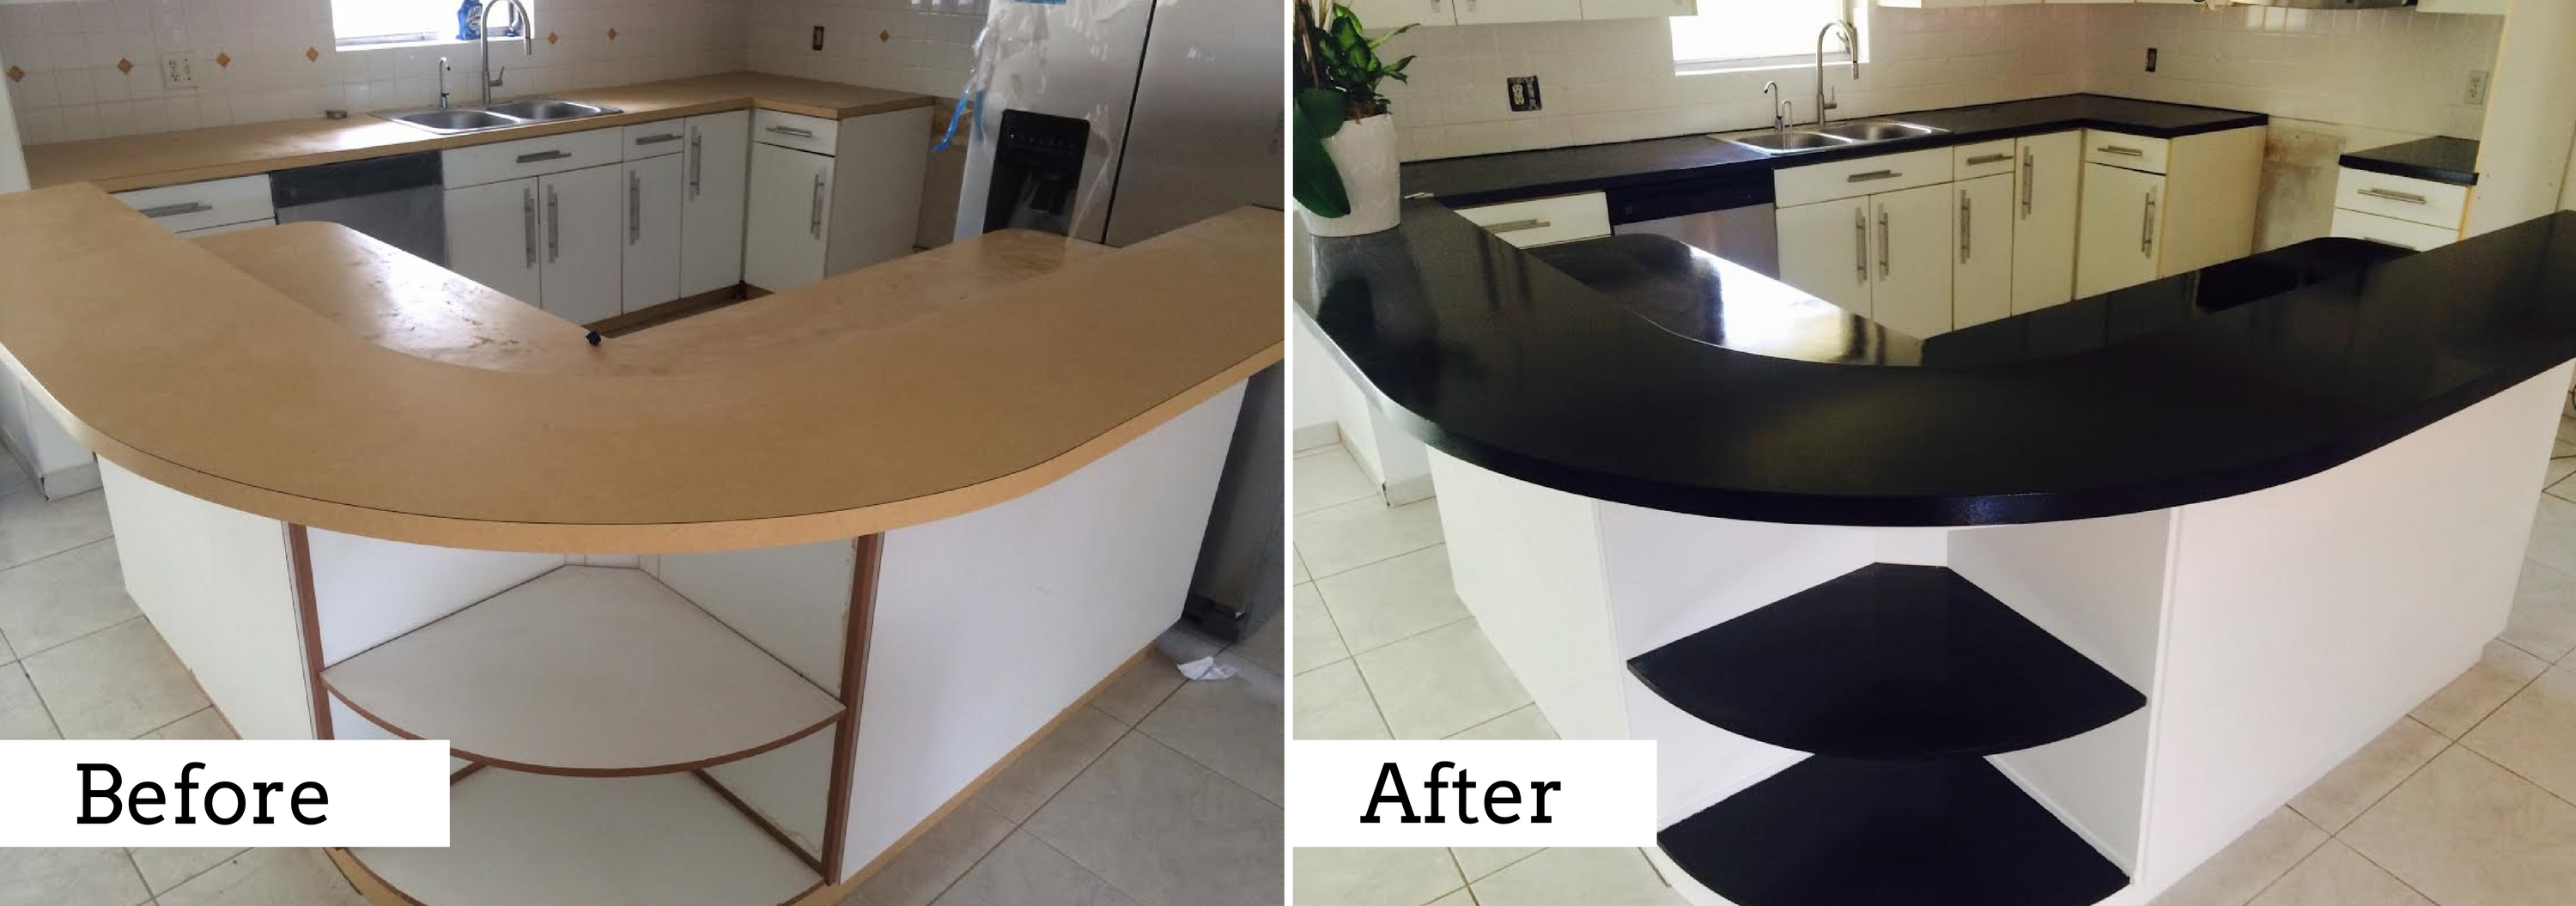 countertops faux with new sink stone refinishing tub repair finish large out a for cut pro refinished countertop